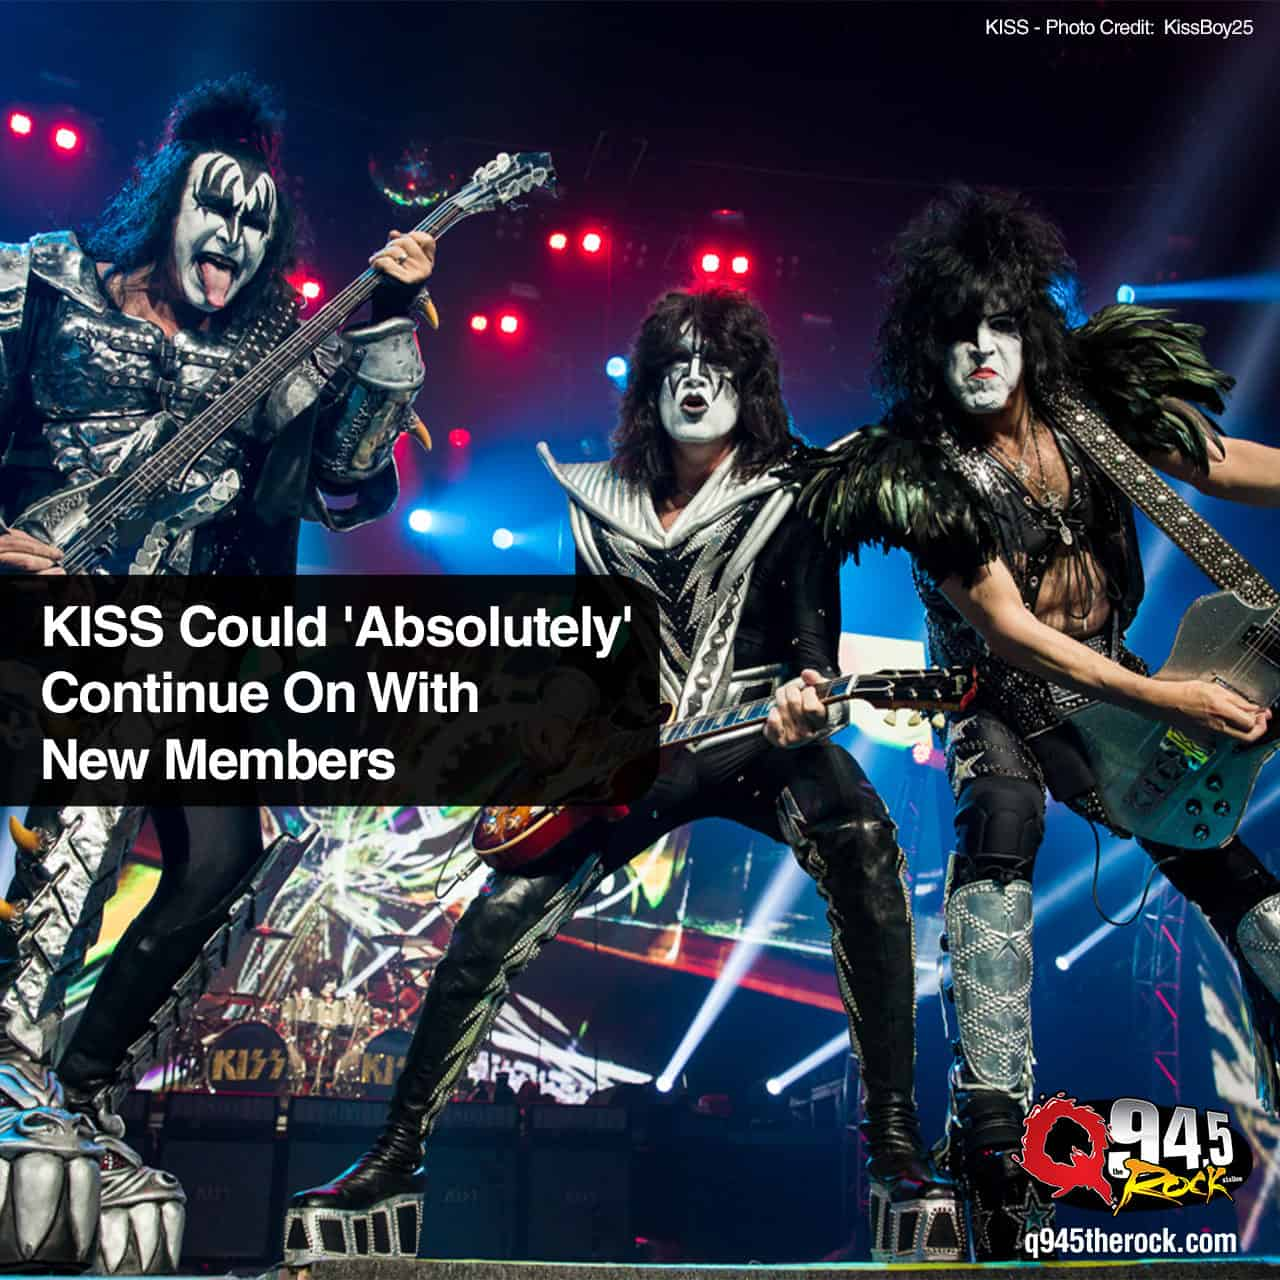 KISS Could 'Absolutely' Continue On With New Members | Photo Credit: KissBoy25